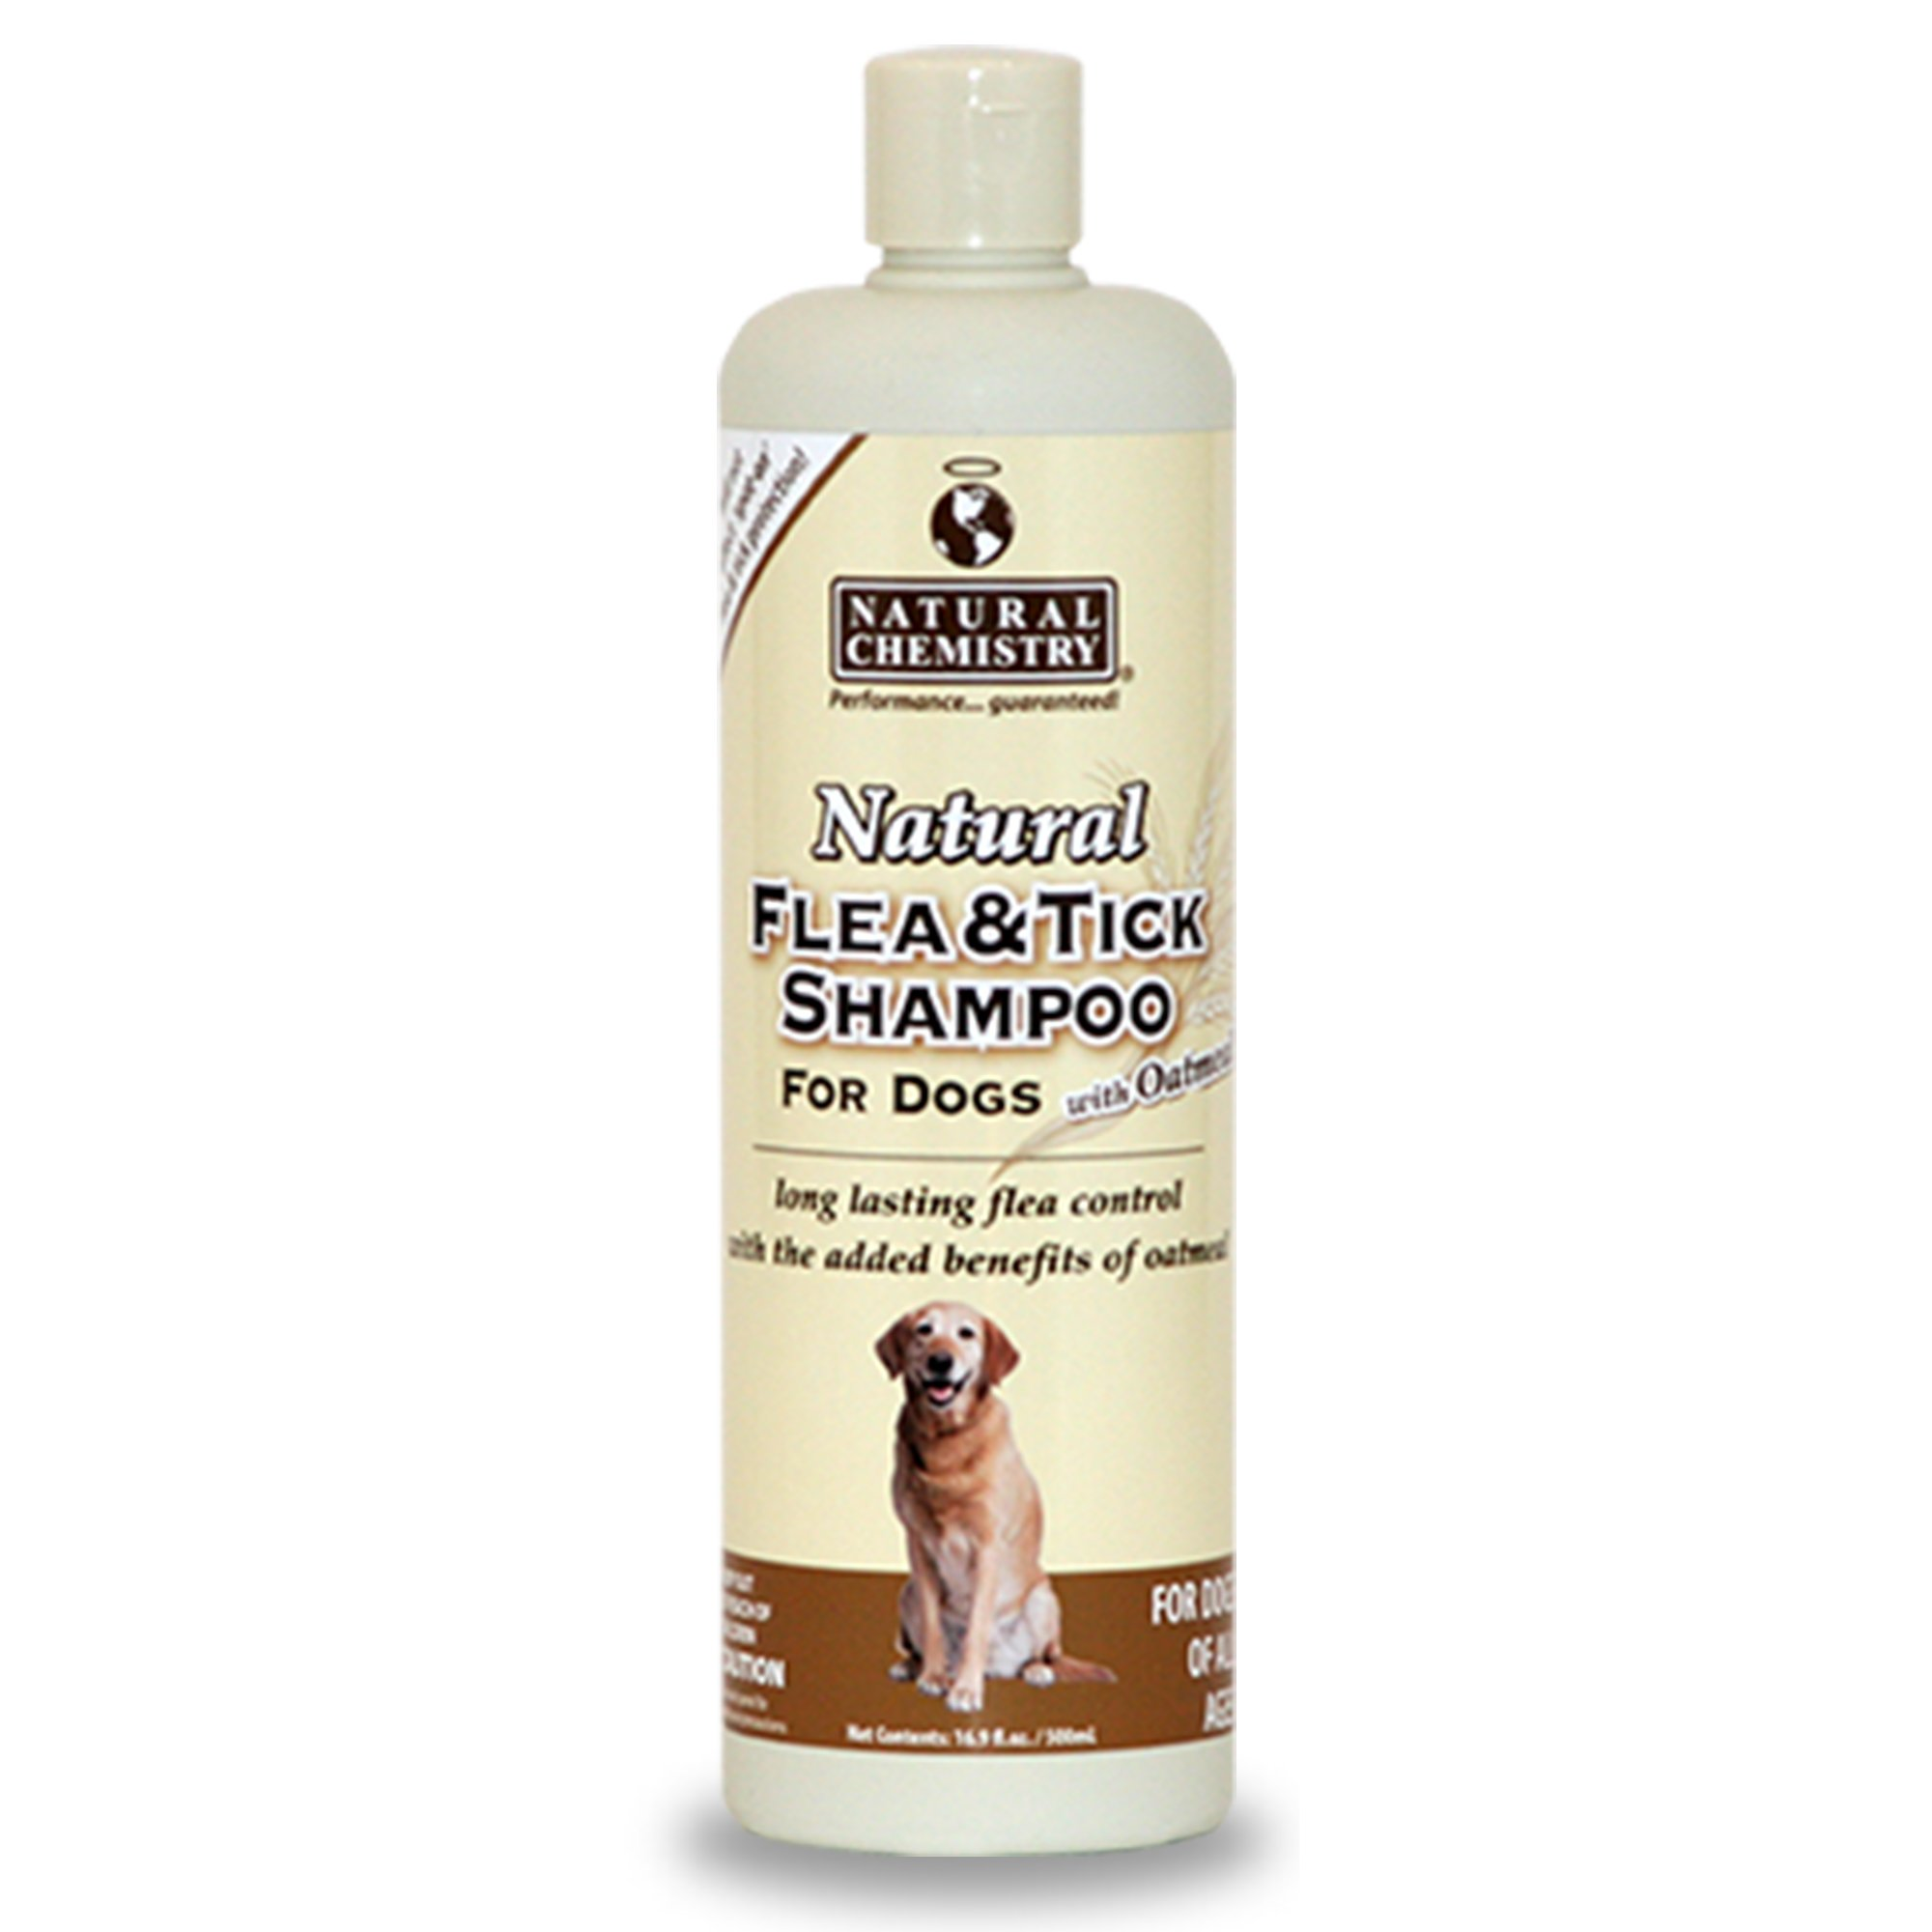 Natural Chemistry Natural Flea & Tick Shampoo with Oatmeal for Dogs